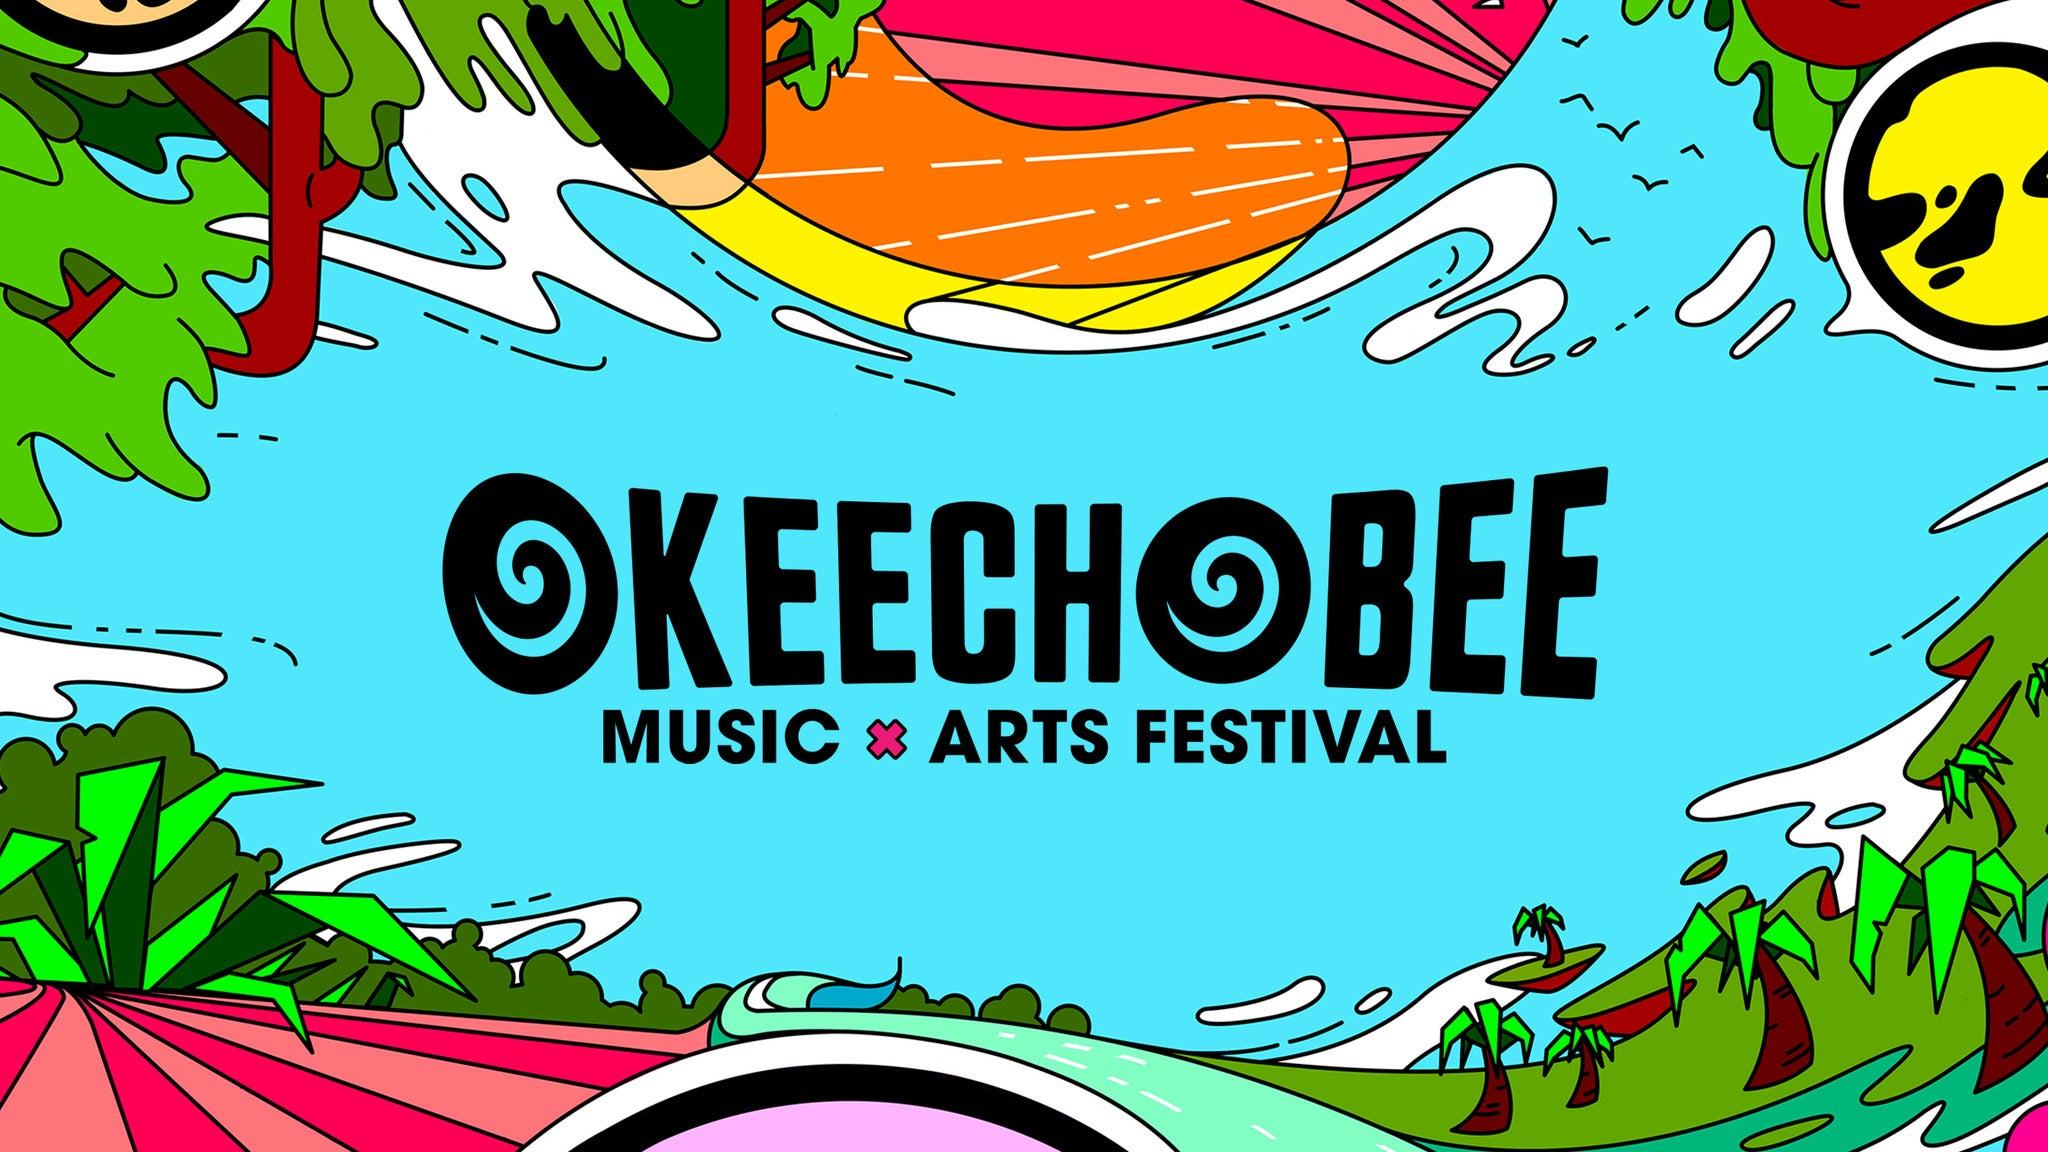 Okeechobee Music & Arts Festival at Sunshine Grove